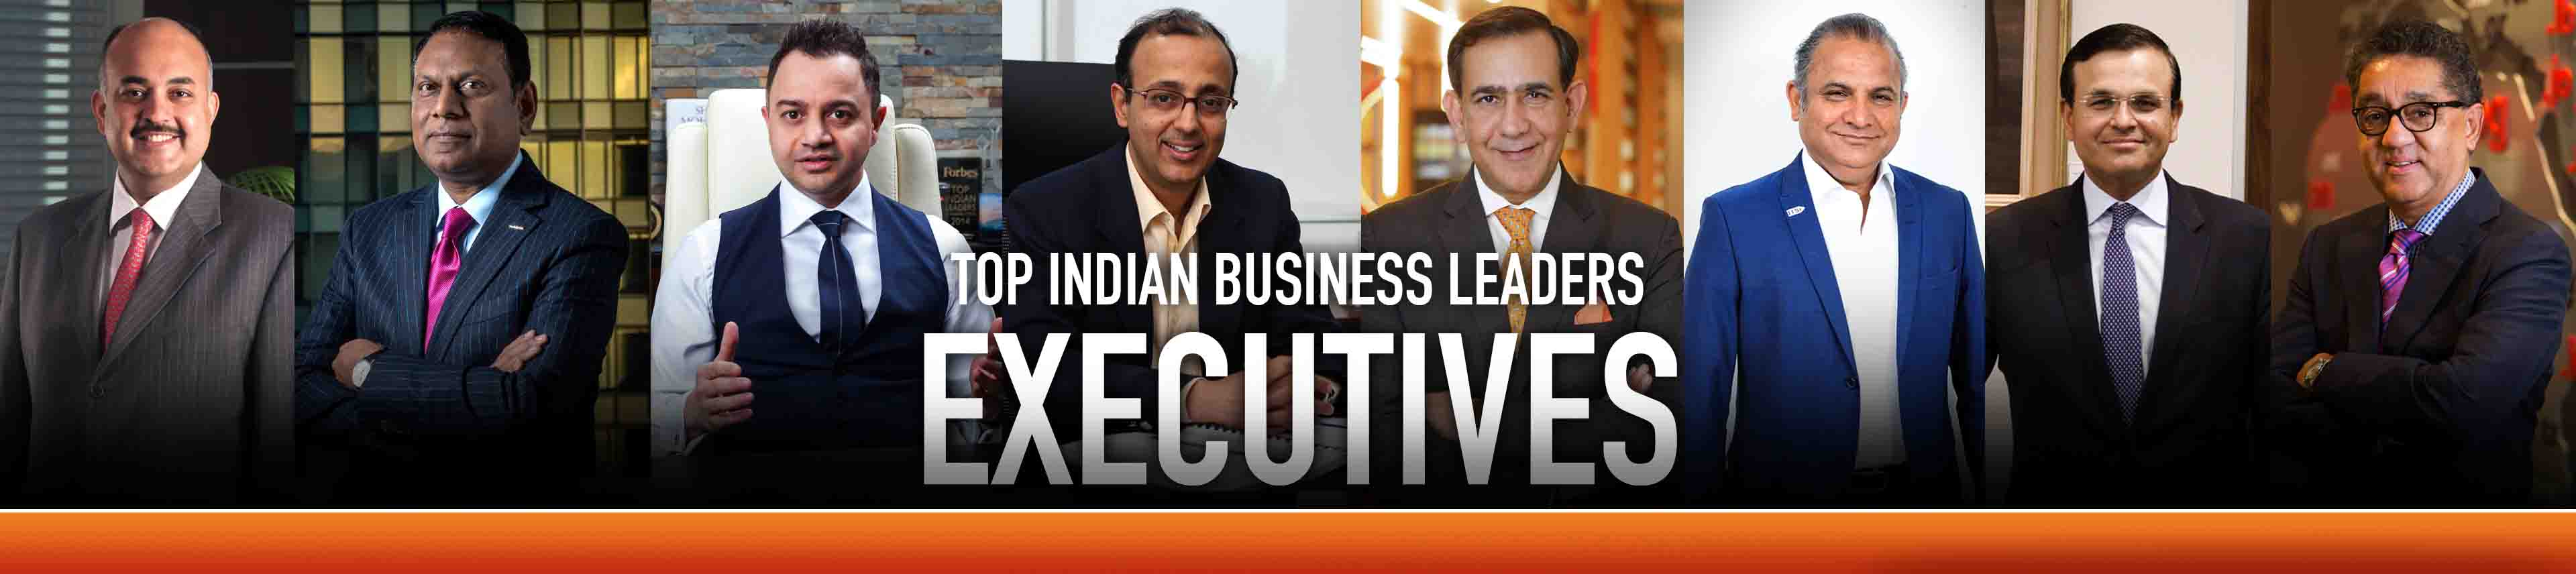 Top 50 Indian Executives 2018